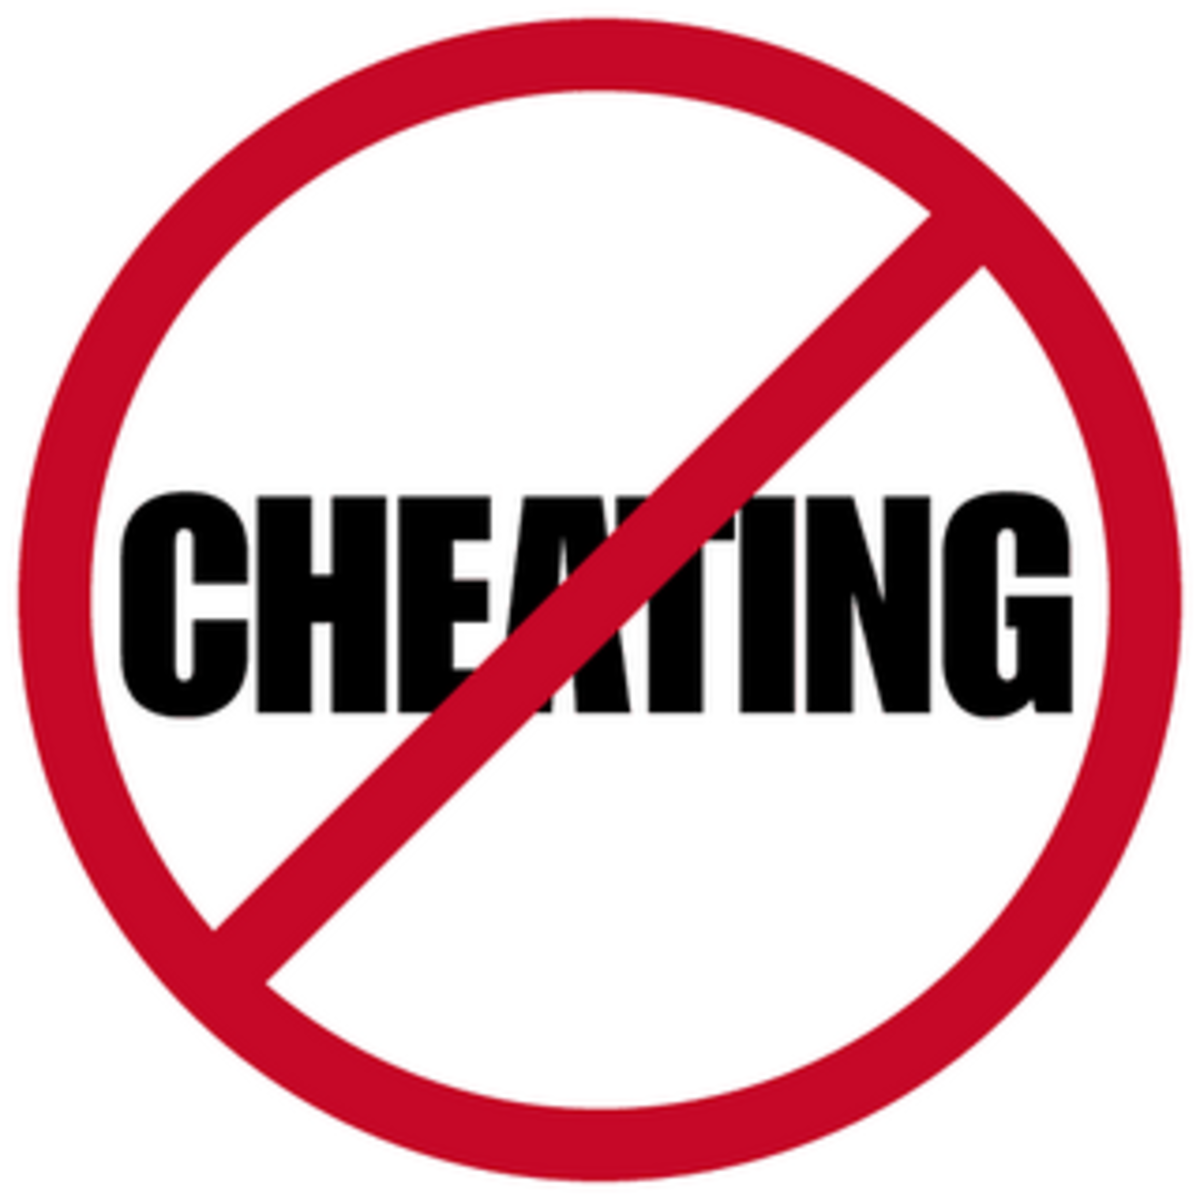 Why Do Children Cheat? | Psychology Today